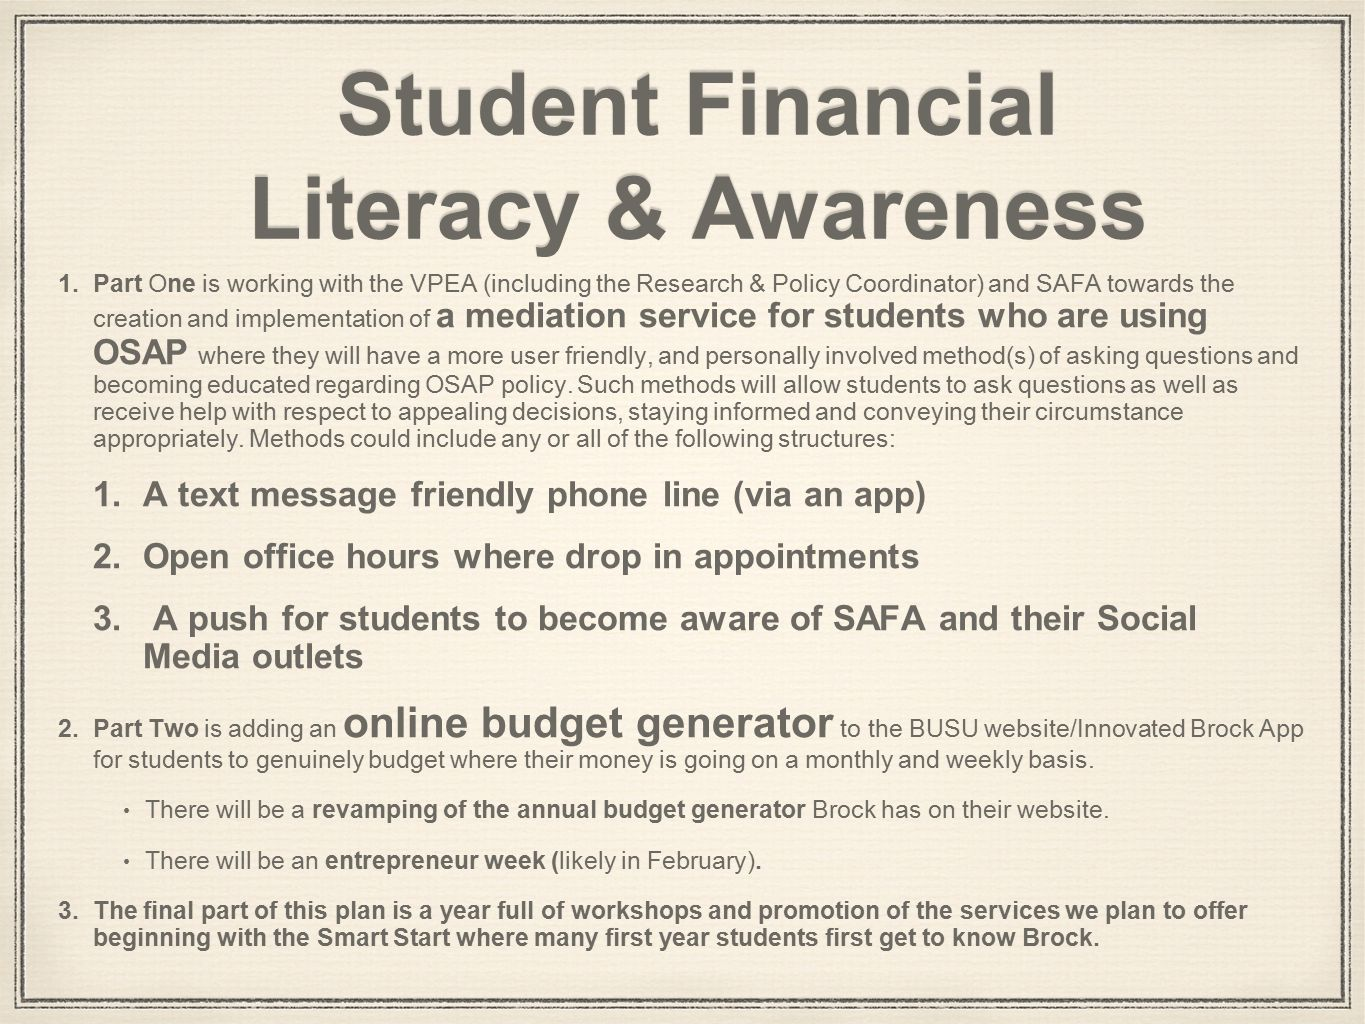 Student Financial Literacy & Awareness 1.Part One is working with the VPEA (including the Research & Policy Coordinator) and SAFA towards the creation and implementation of a mediation service for students who are using OSAP where they will have a more user friendly, and personally involved method(s) of asking questions and becoming educated regarding OSAP policy.